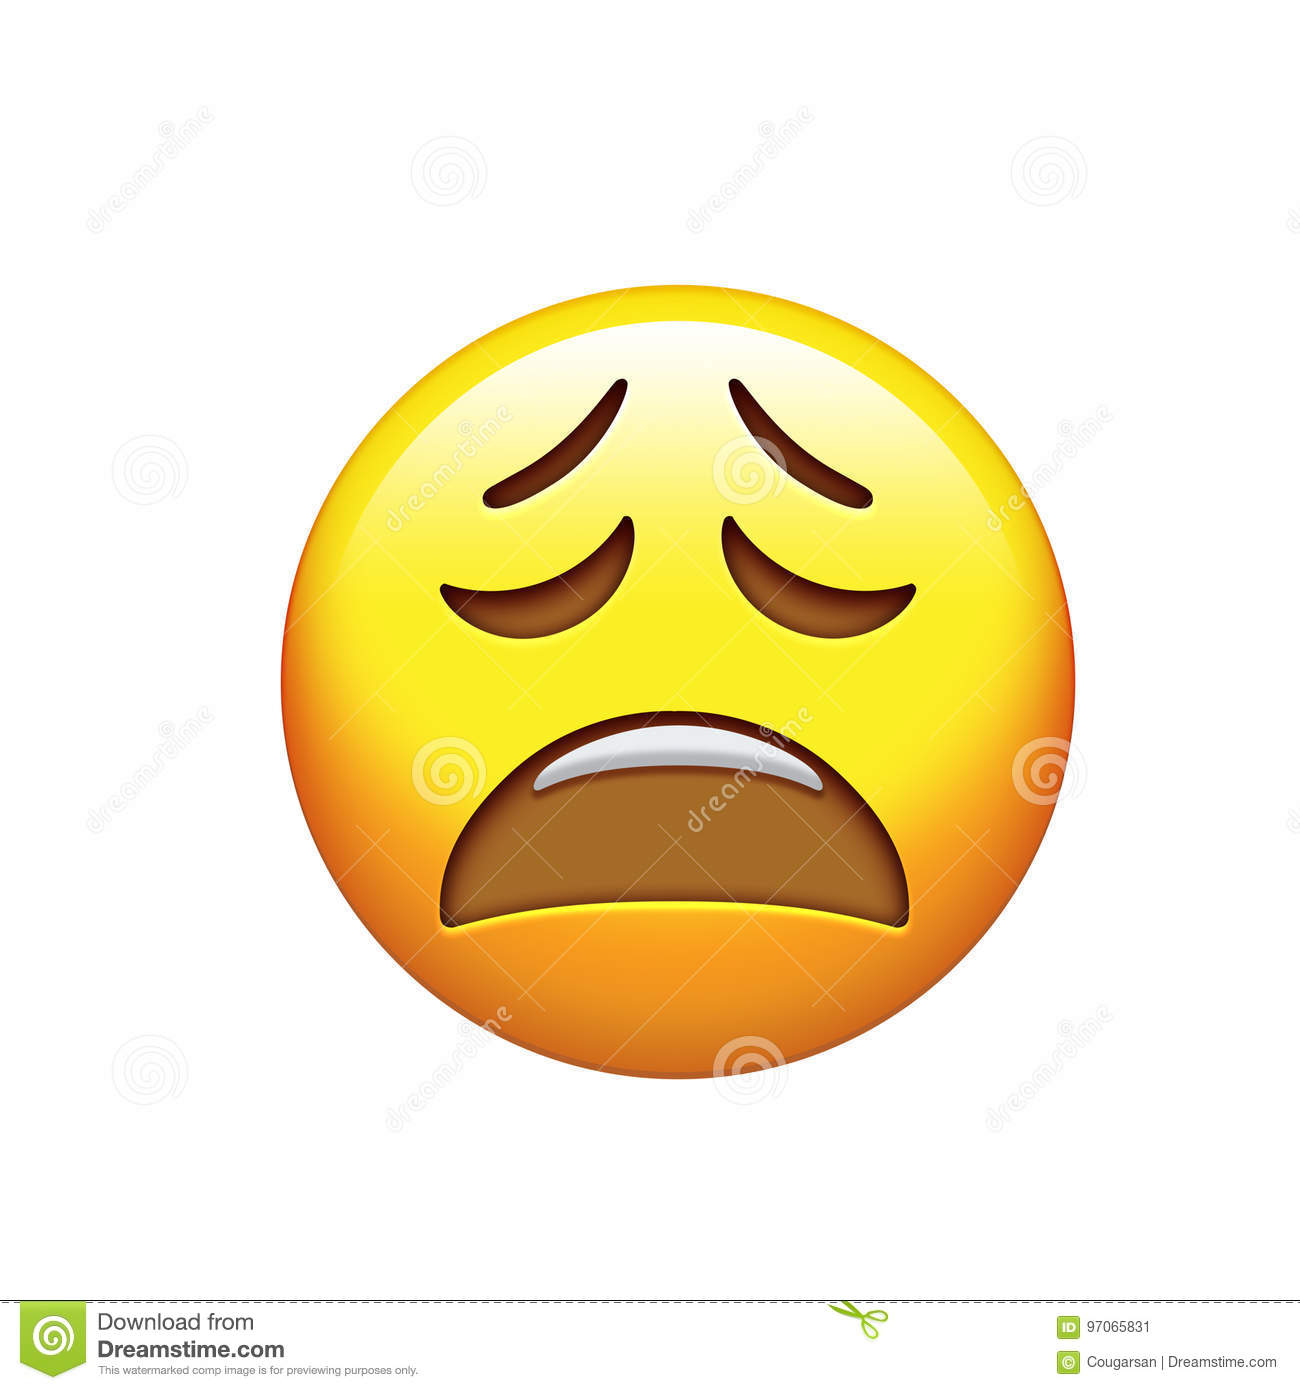 Emoji sad unhappy and feeling depressed yellow face icon